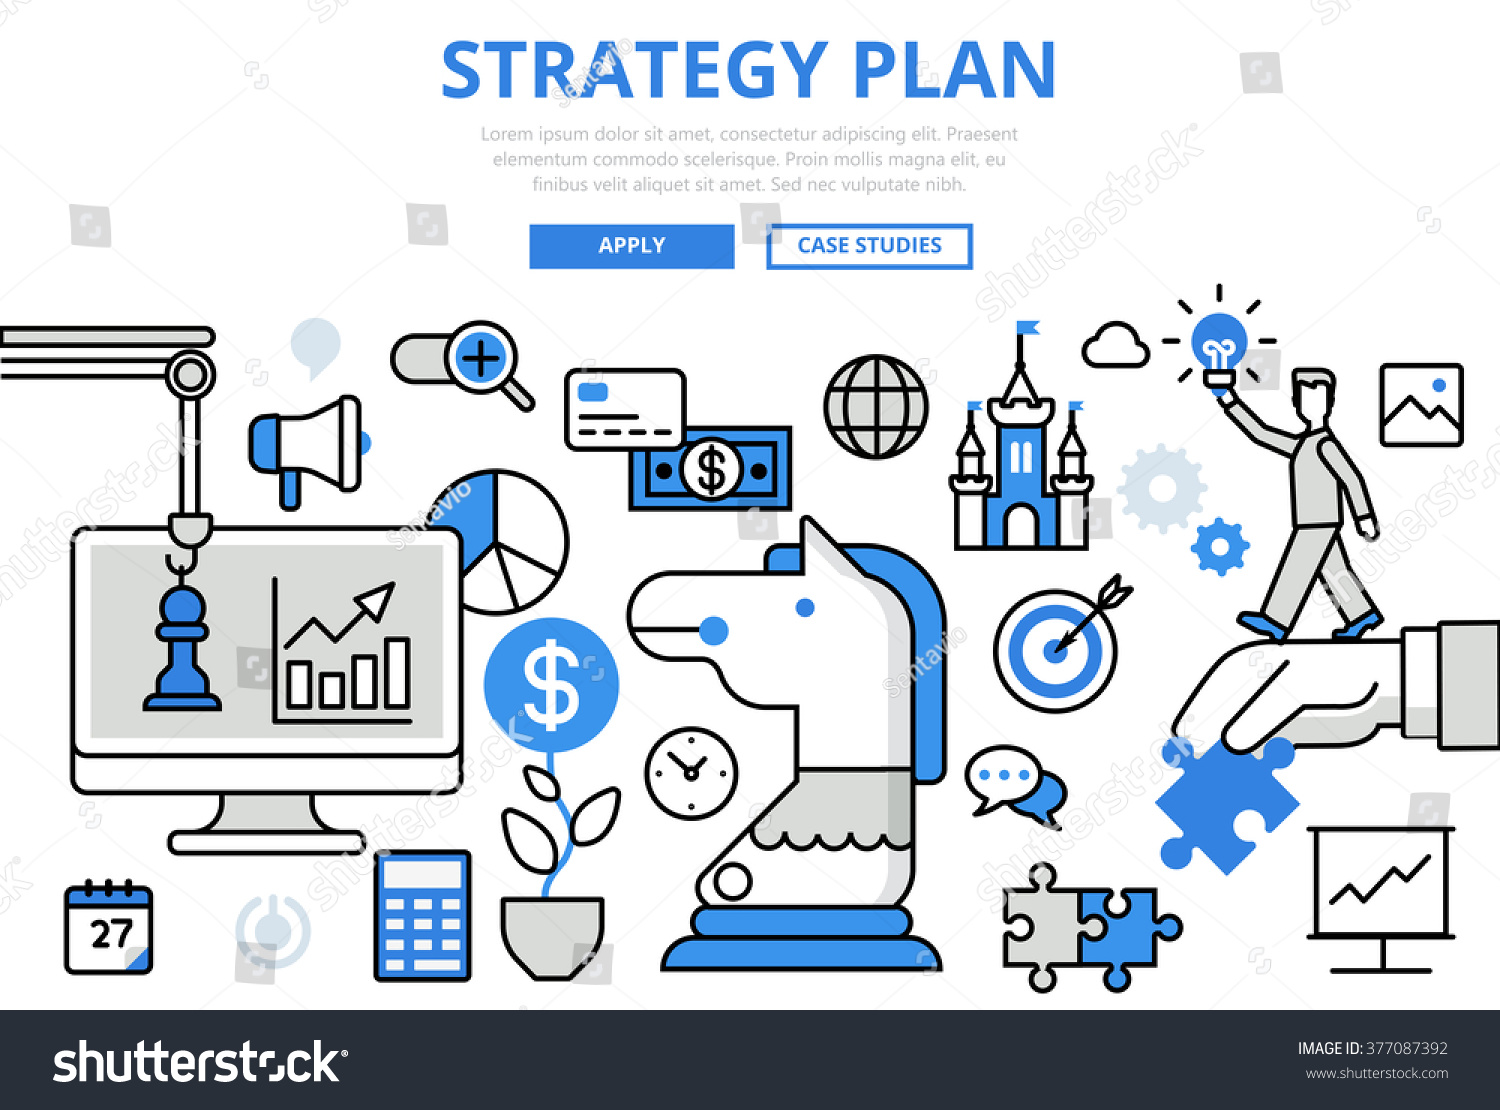 Strategy plan strategic planning business concept stock for Conceptual site model template